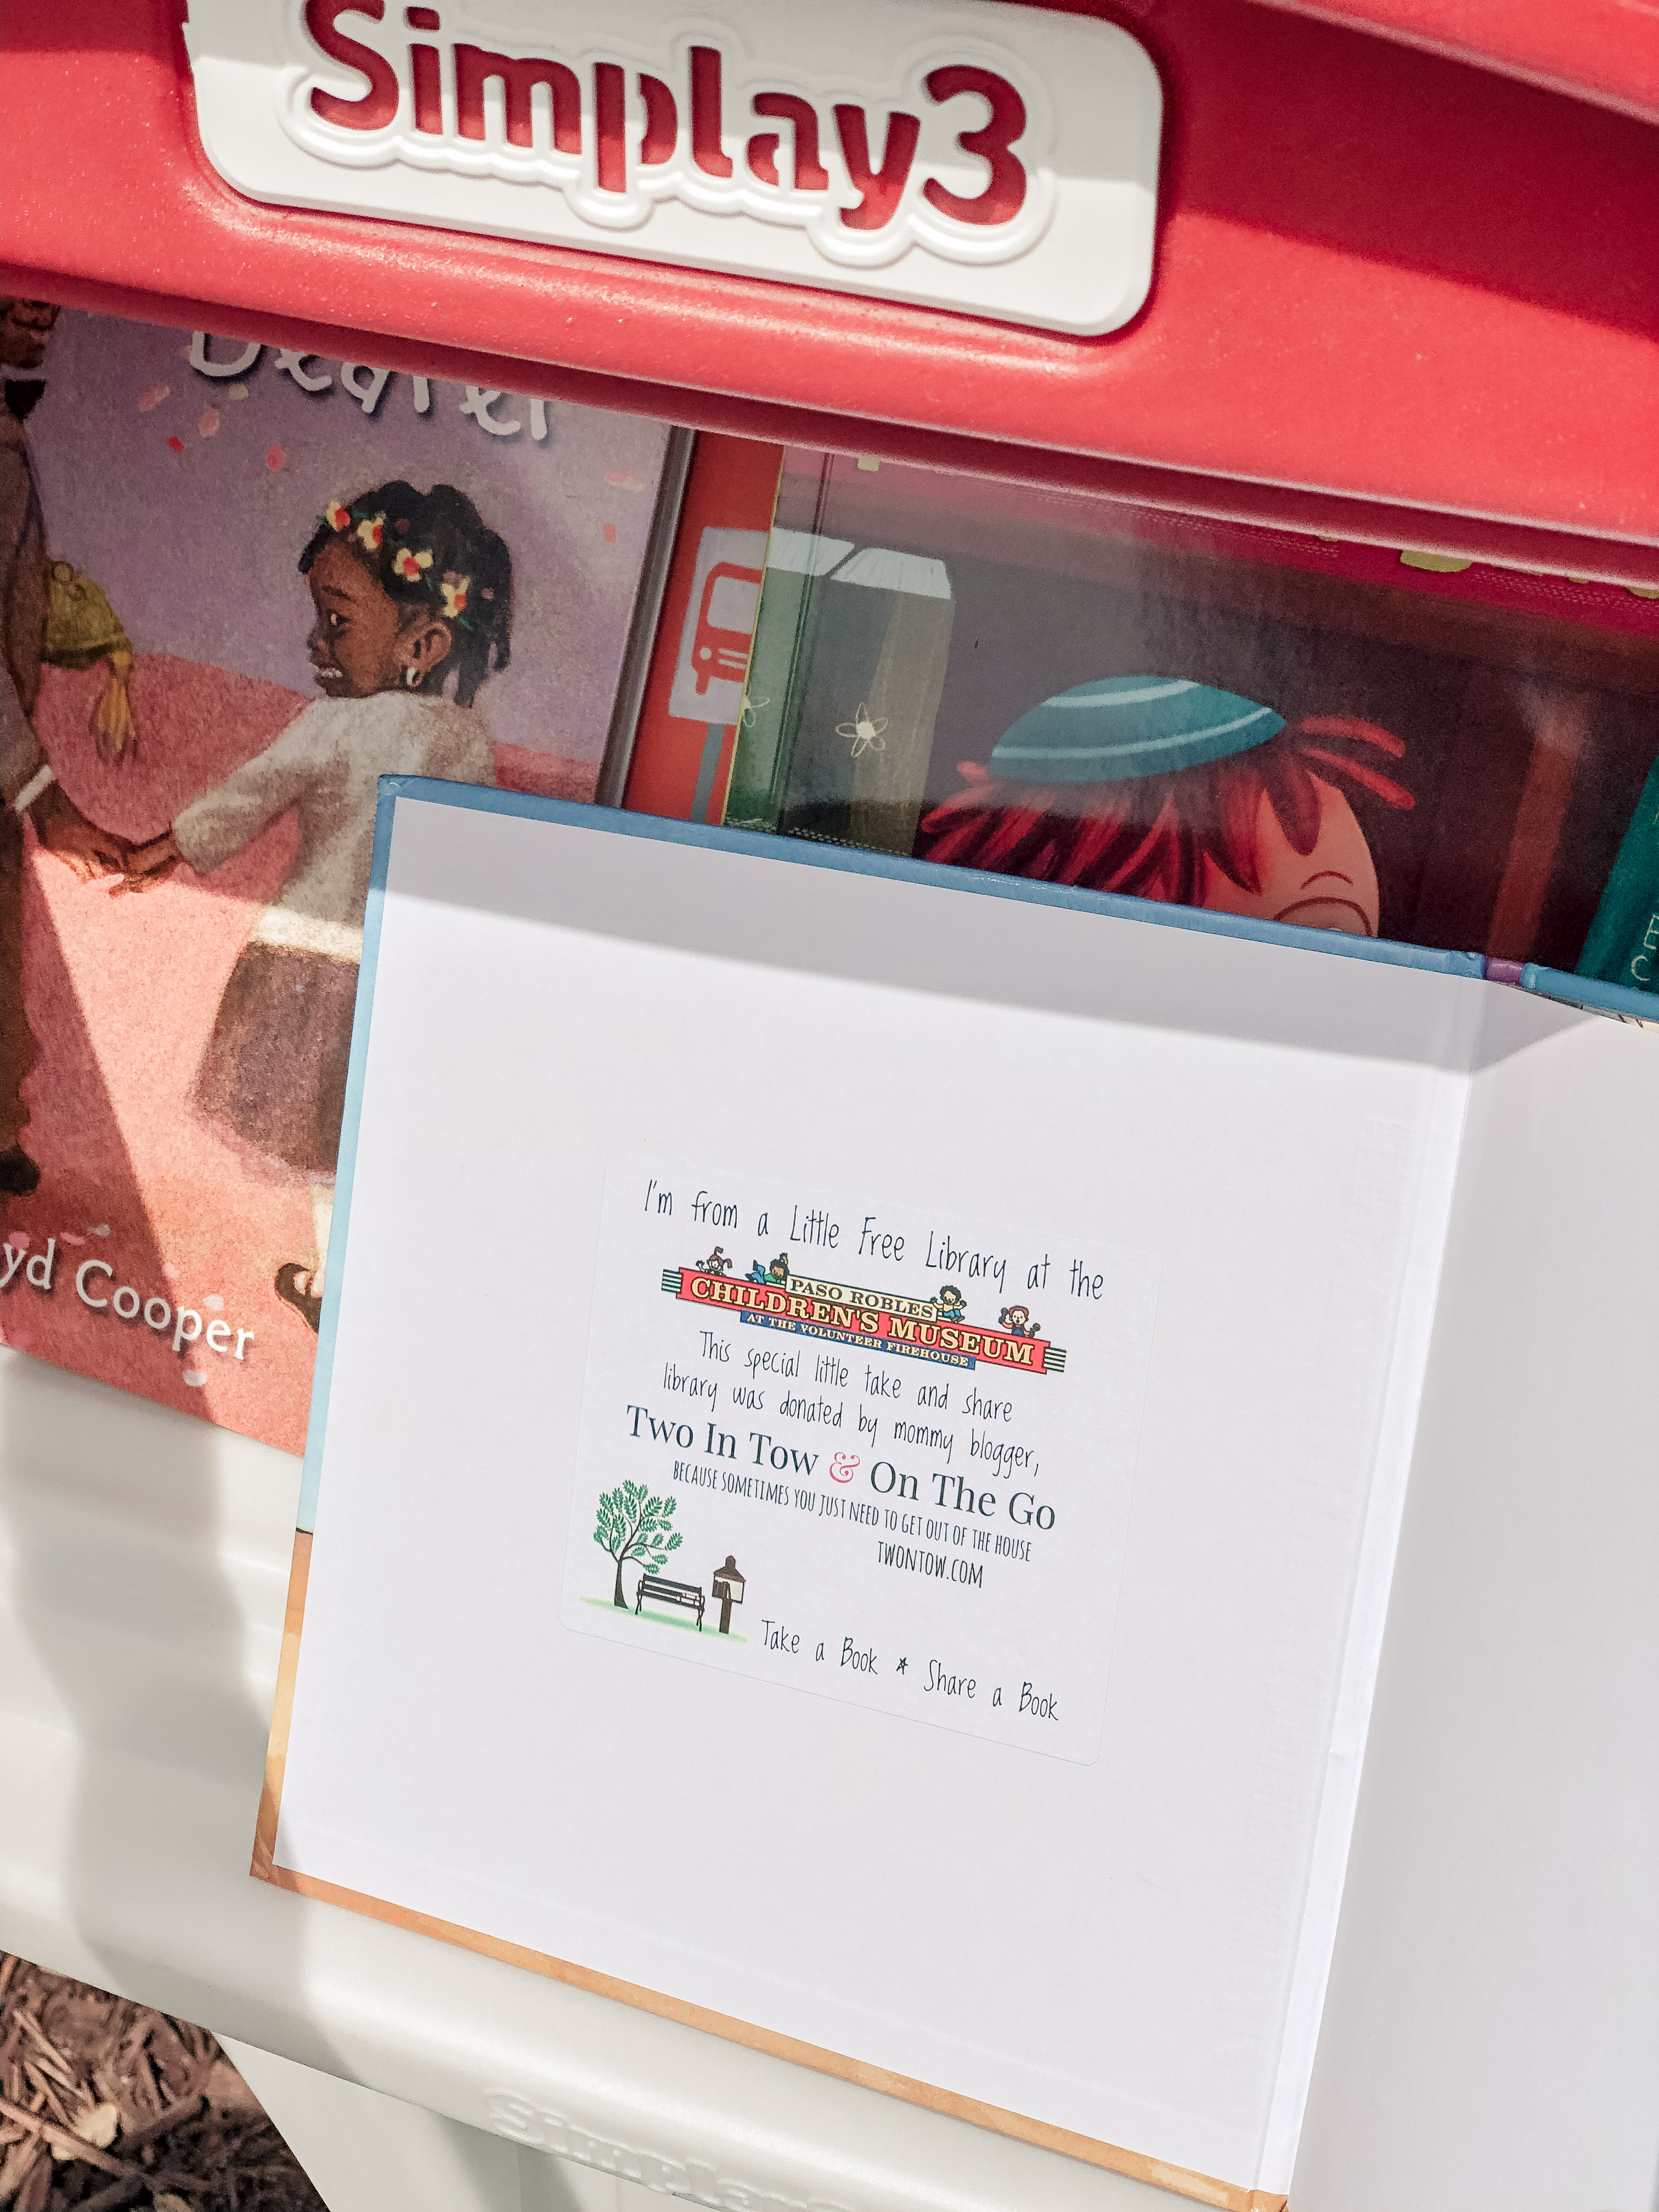 Simplay3's Little Free Library by Two In Tow & On The Go_5